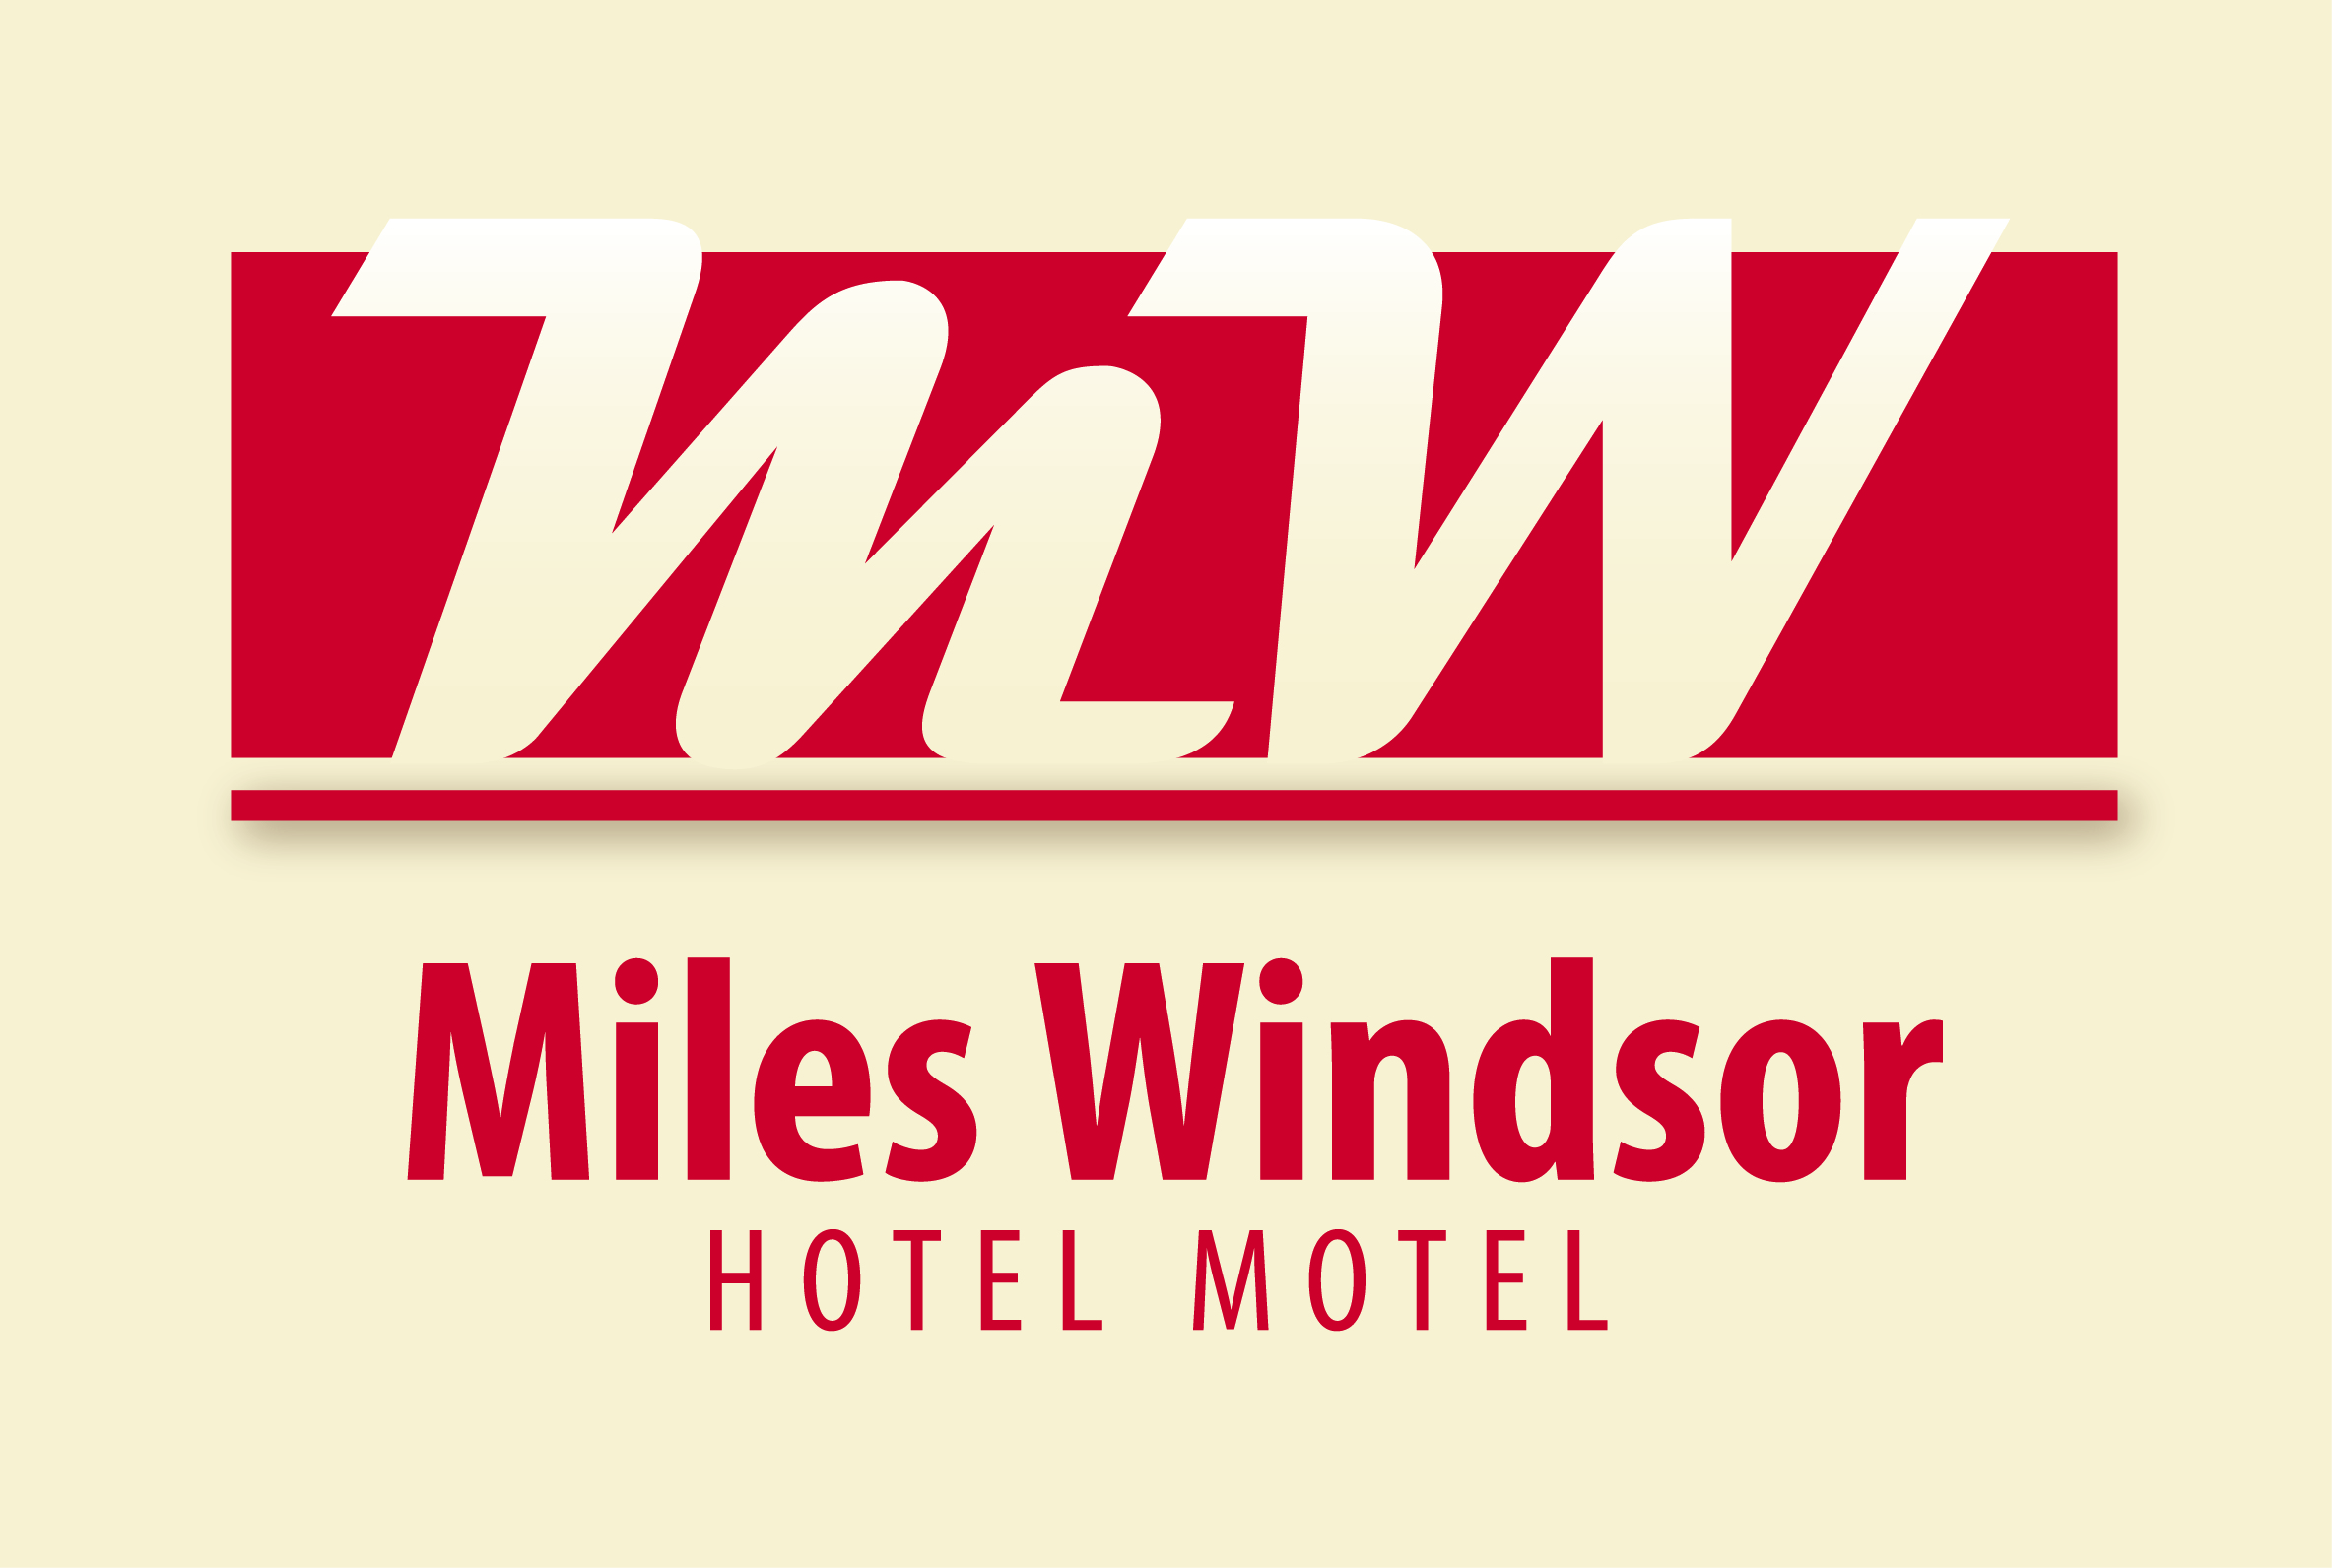 Miles Windsor Hotel Motel - Whitsundays Accommodation